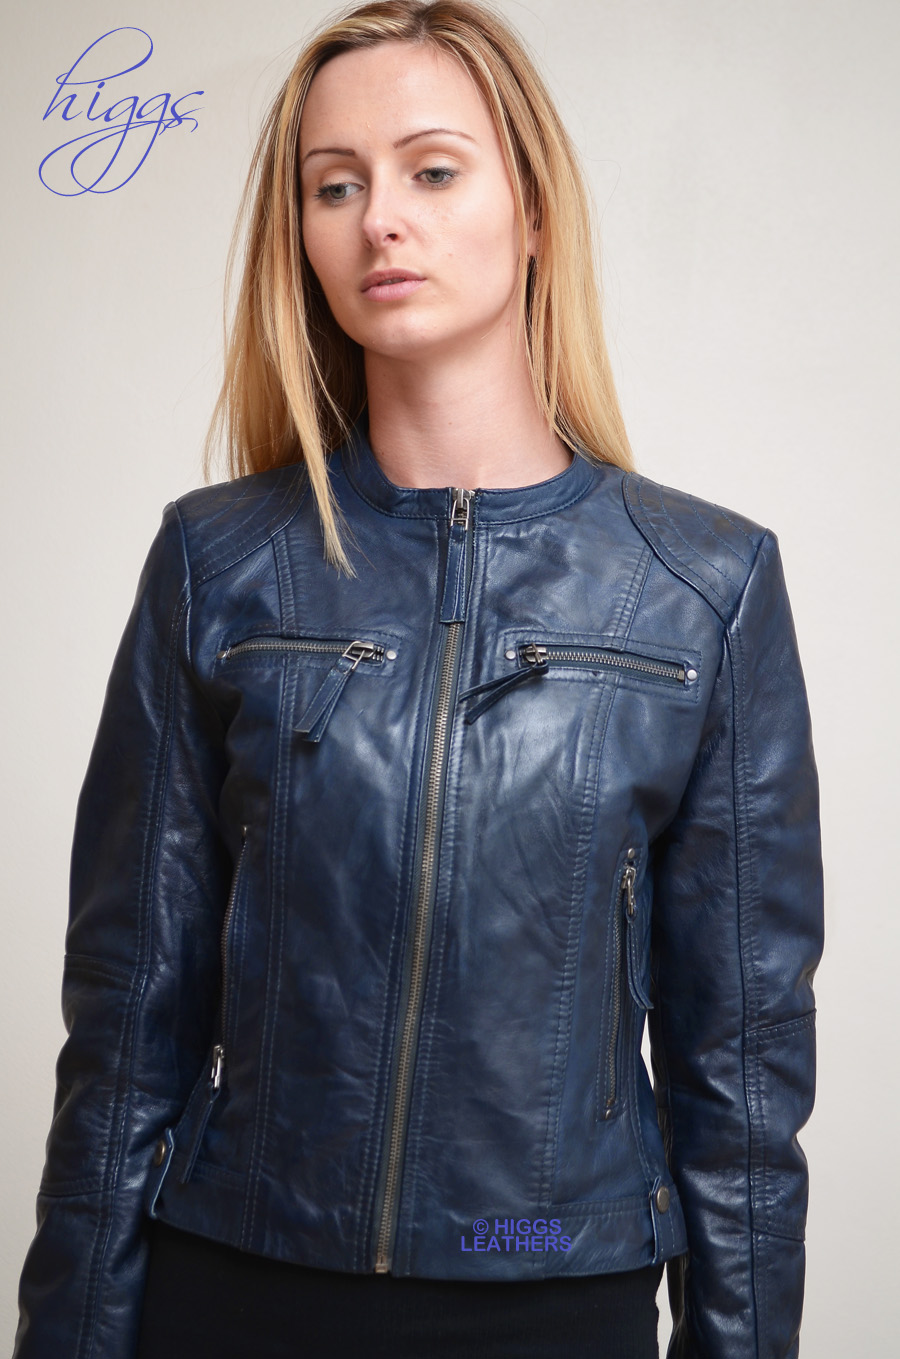 Navy leather jacket uk – Modern fashion jacket photo blog